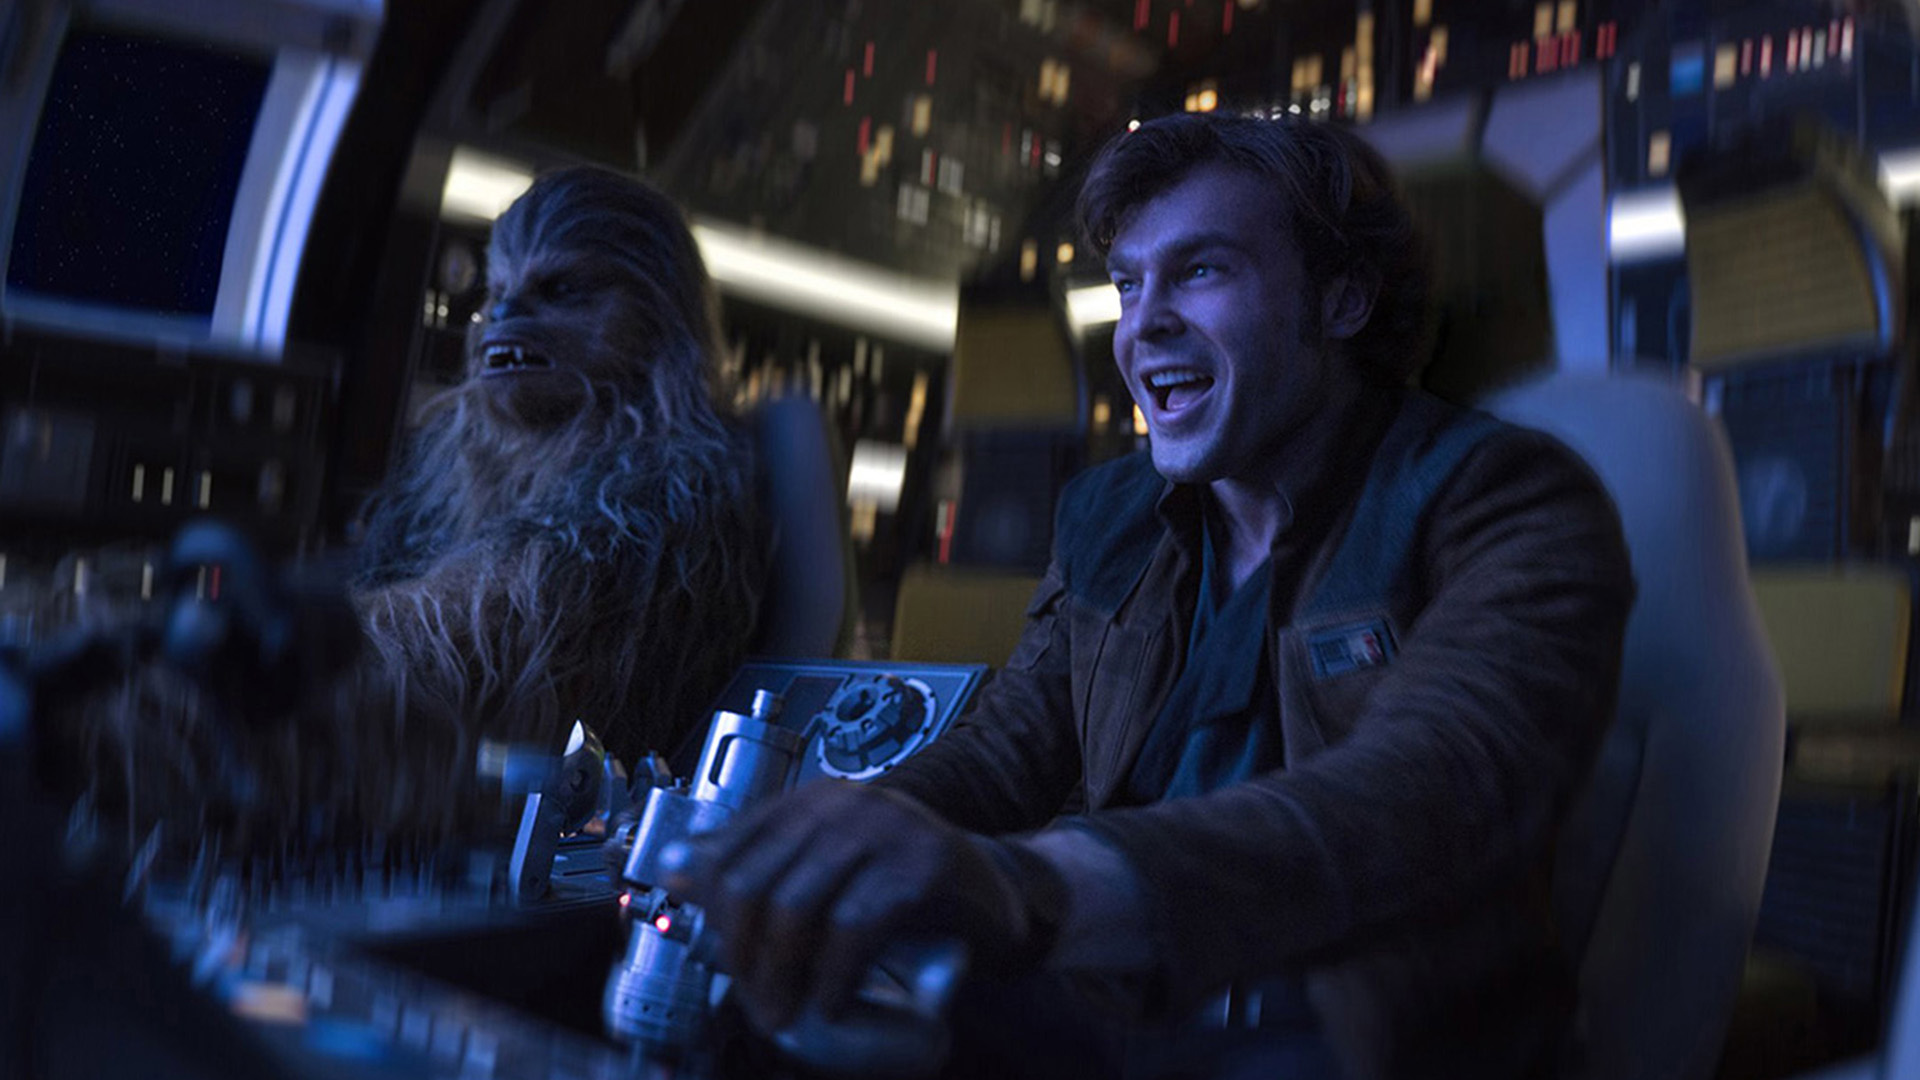 Trailer - SOLO: a star wars story